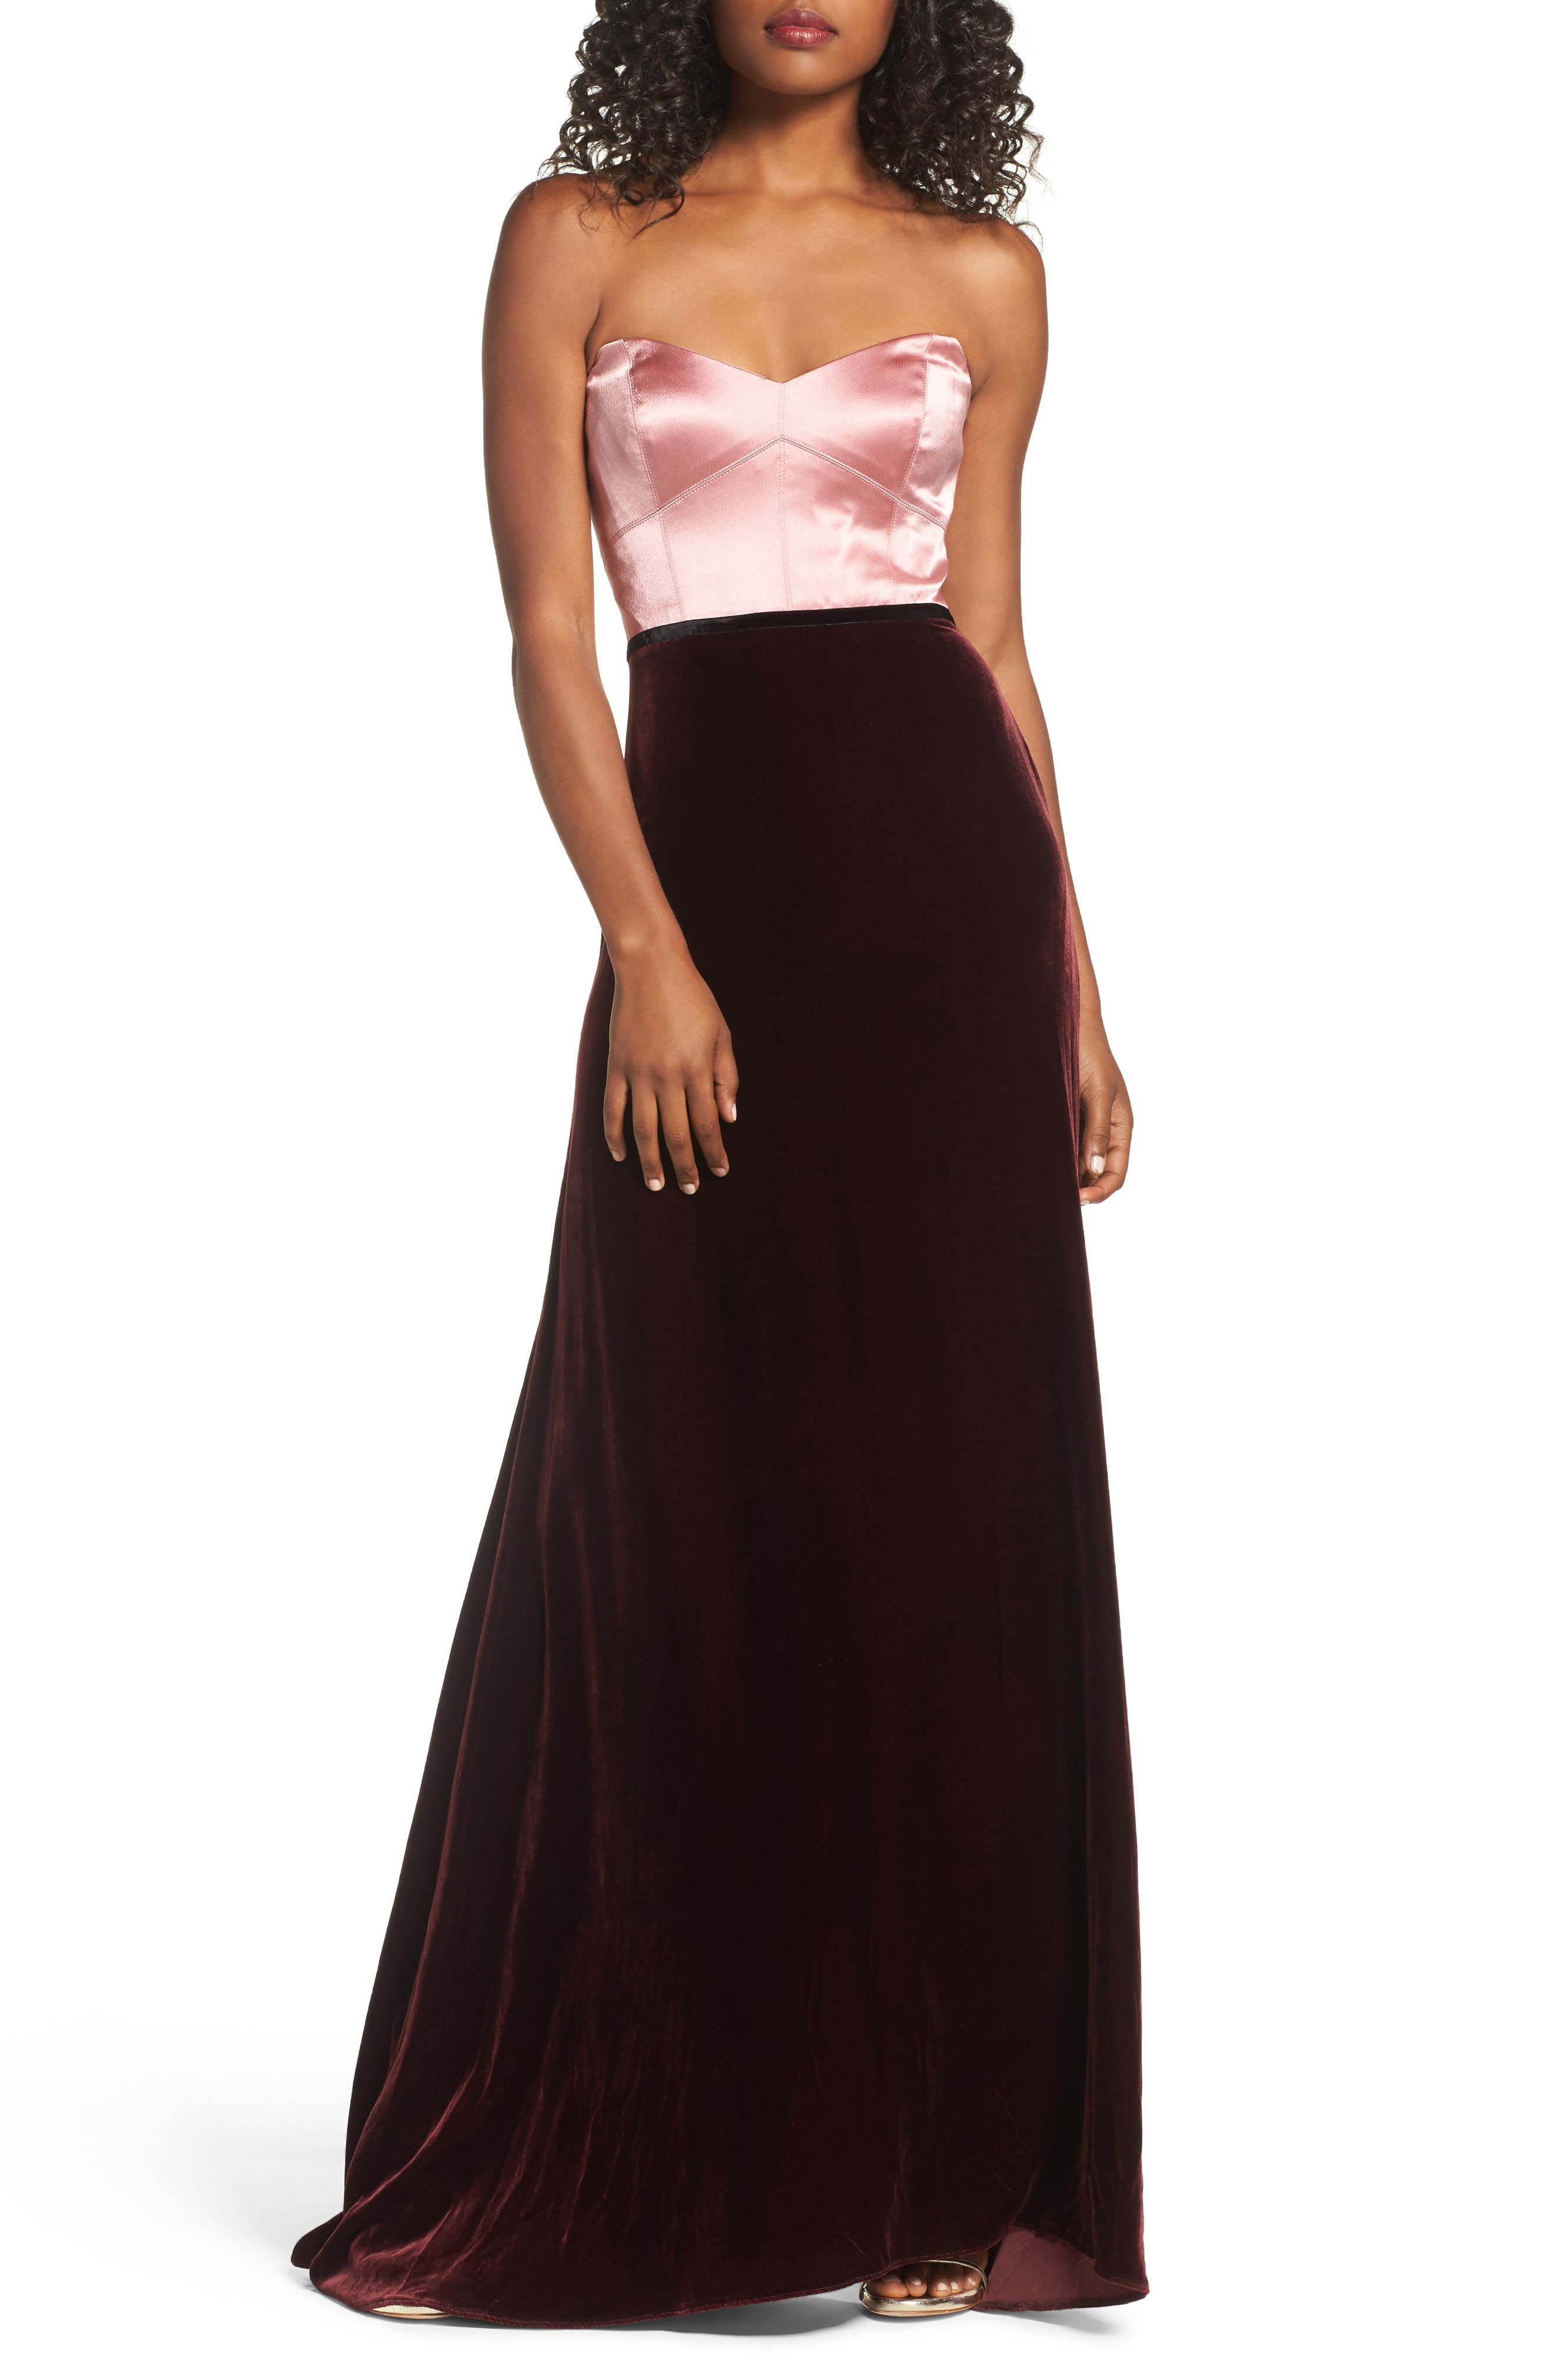 Strapless Satin & Velvet Gown,                             Main thumbnail 1, color,                             Prim Rose/ Raisin/ Black